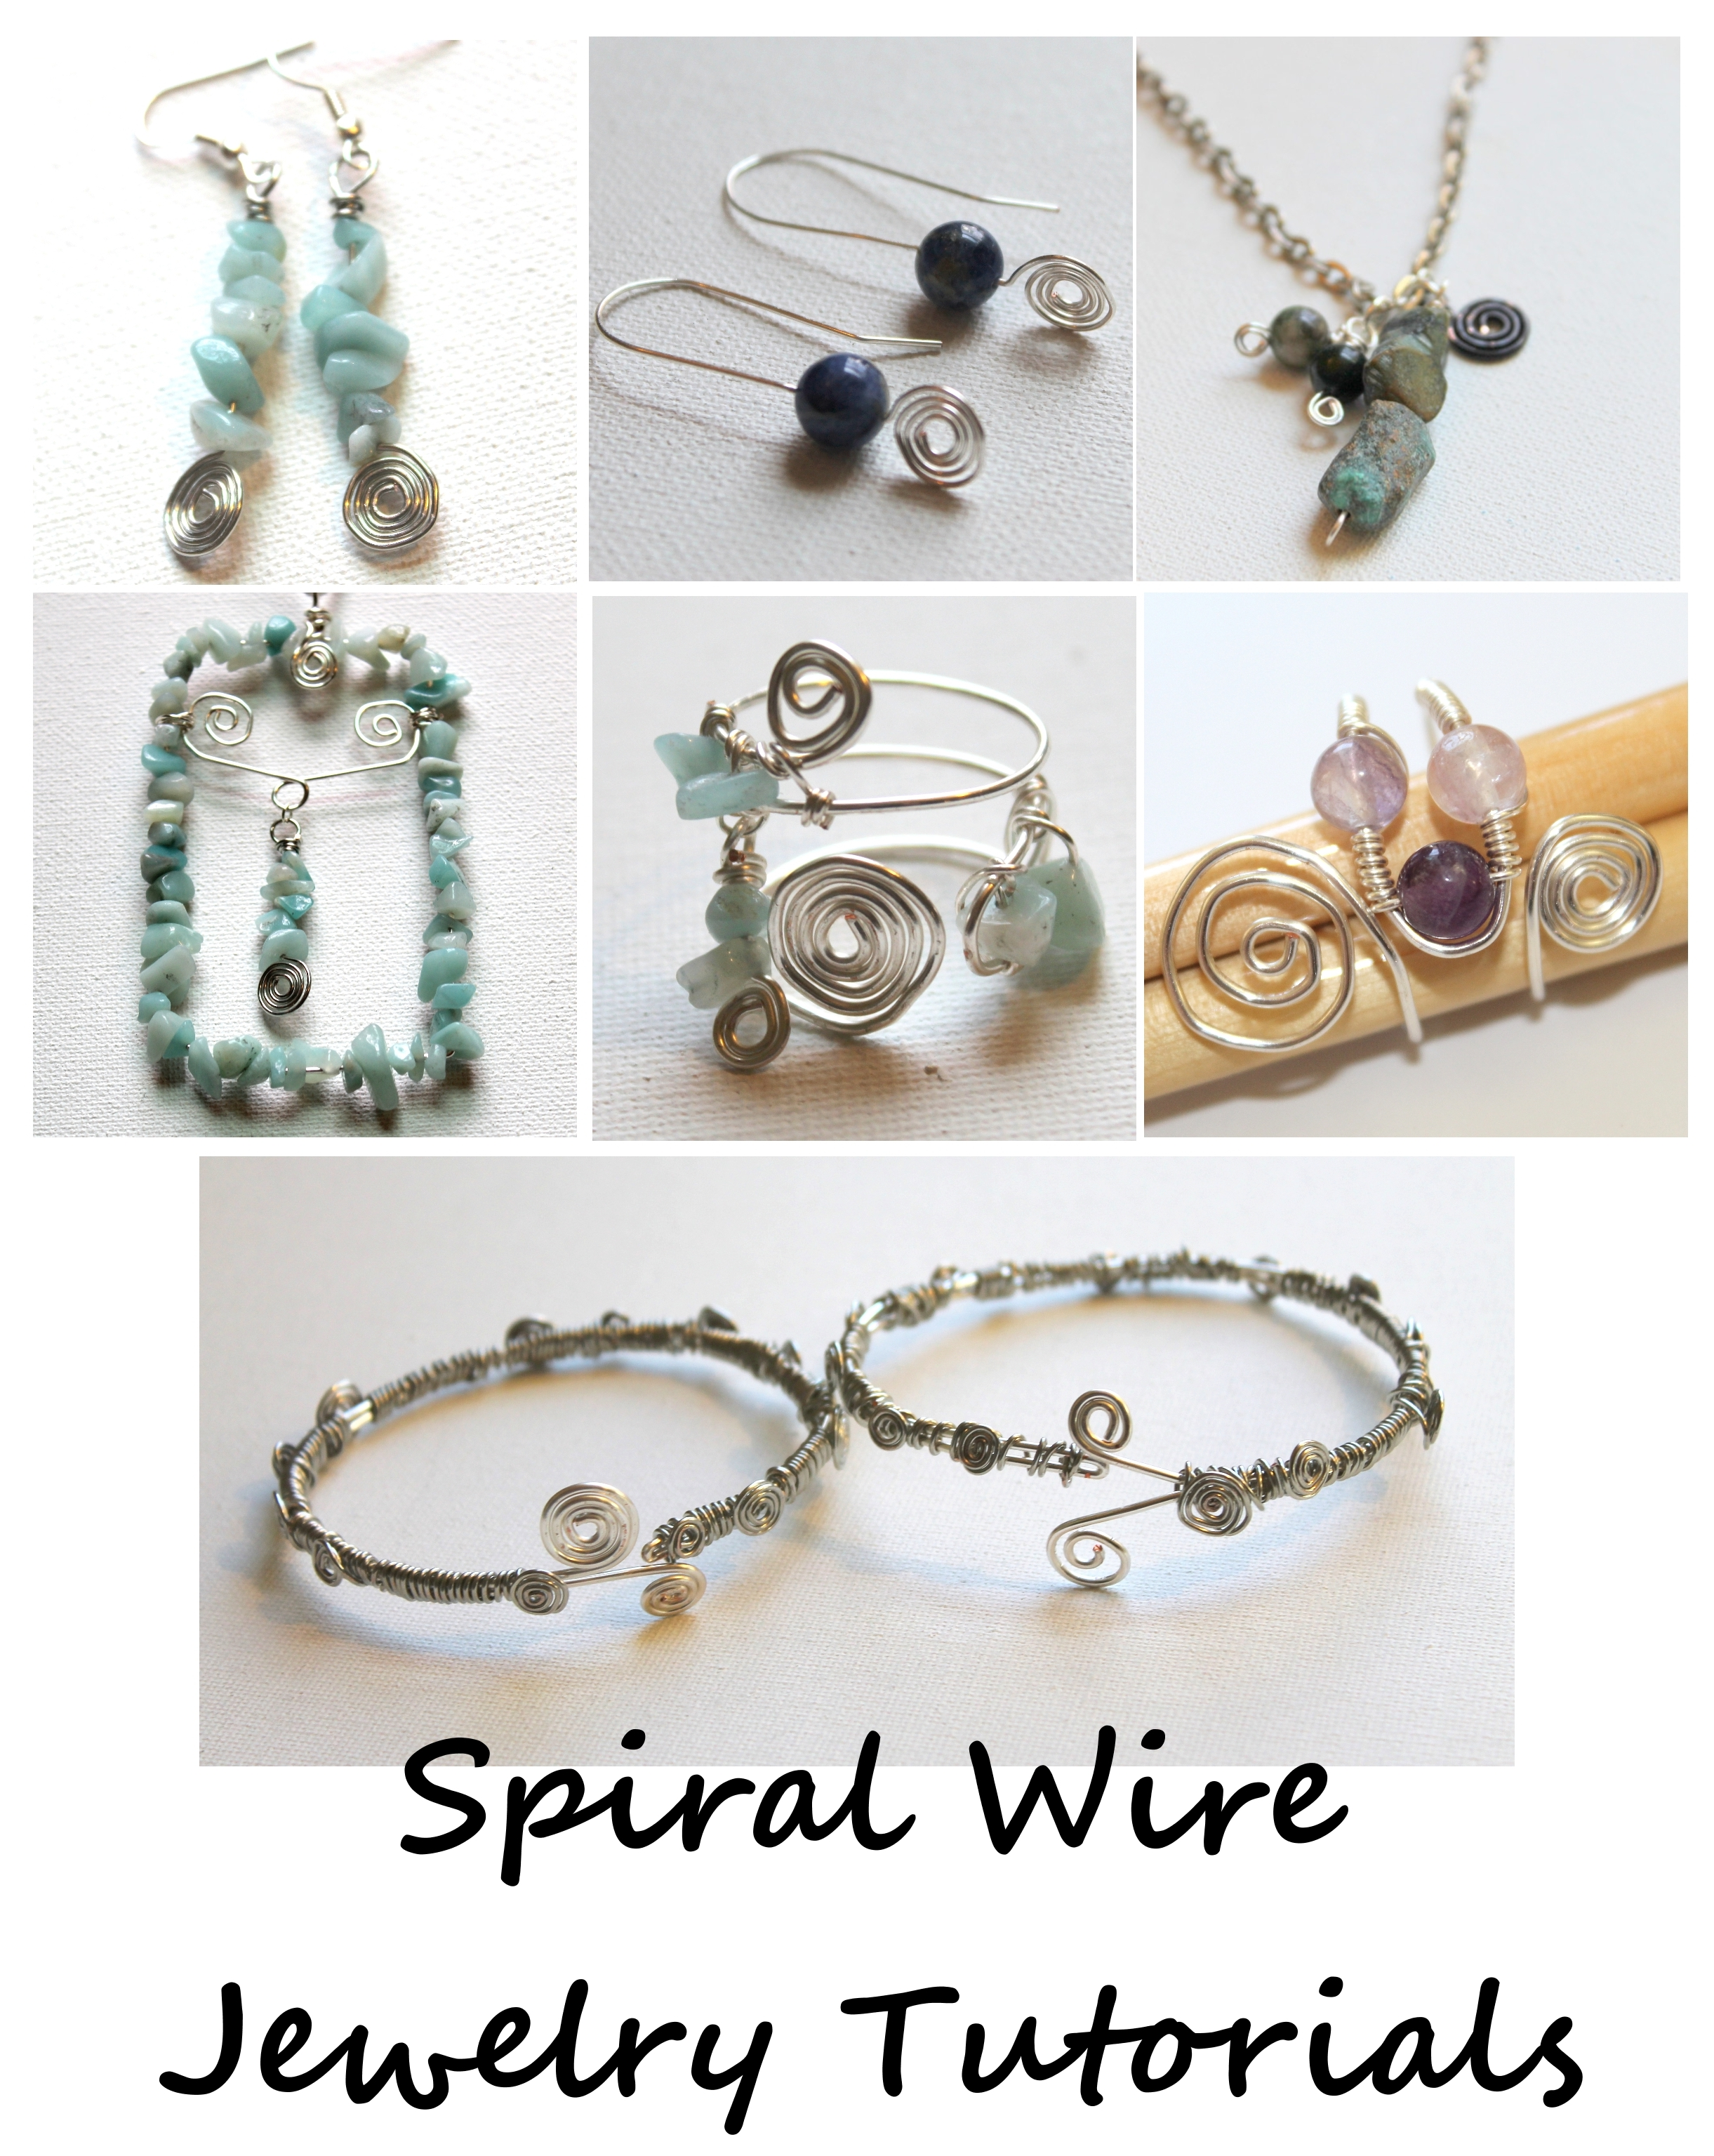 Spiral Wire Jewelry Tutorials eBook